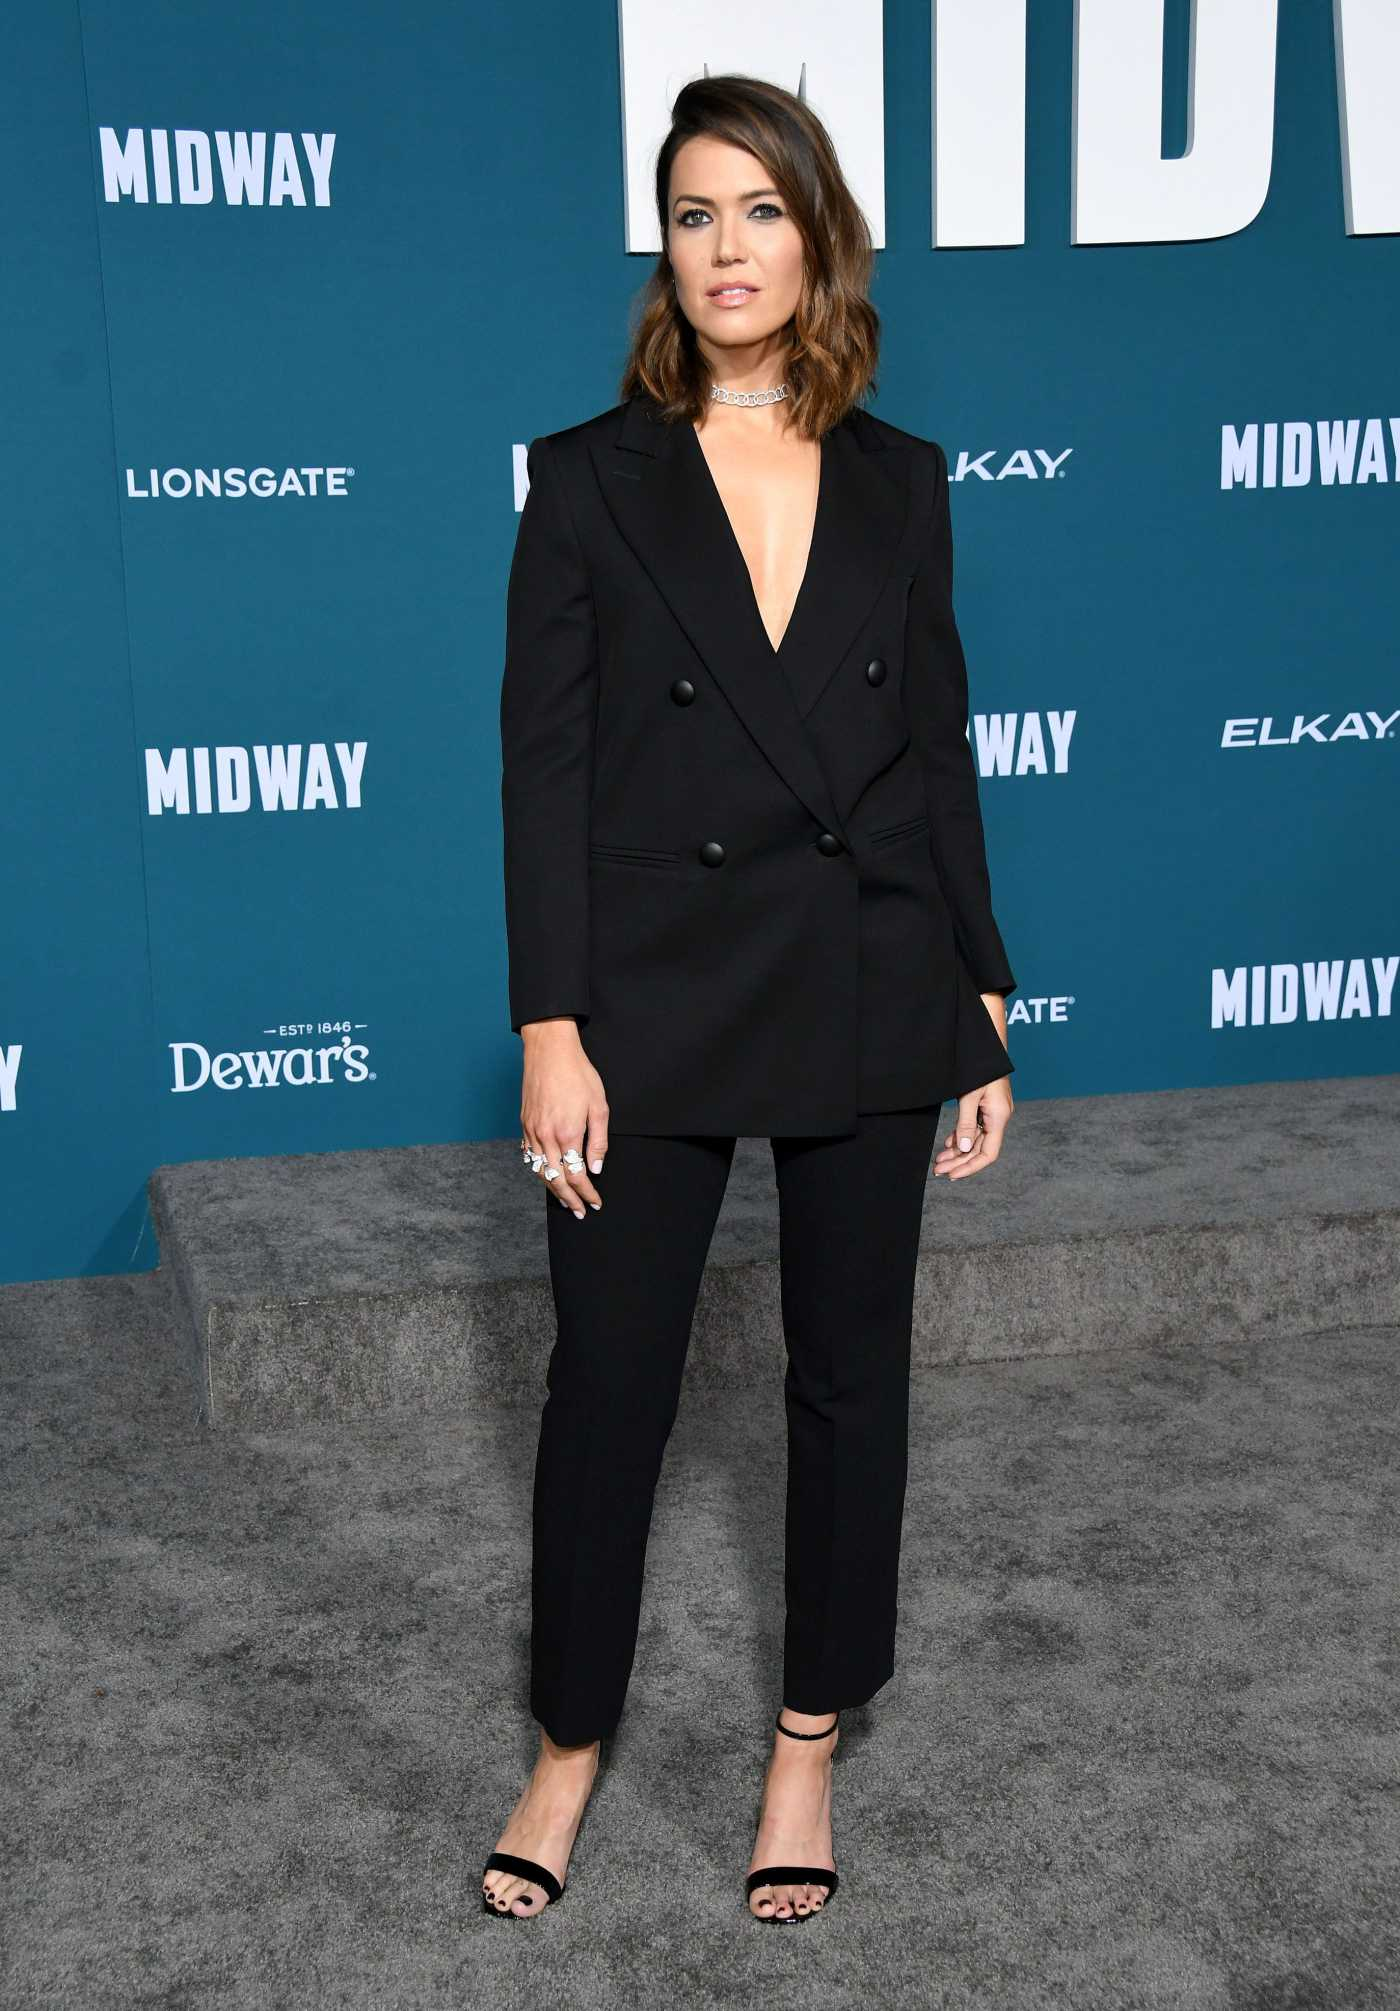 Mandy Moore Attends the Midway Premiere at Regency Village Theatre in Westwood 11/05/2019